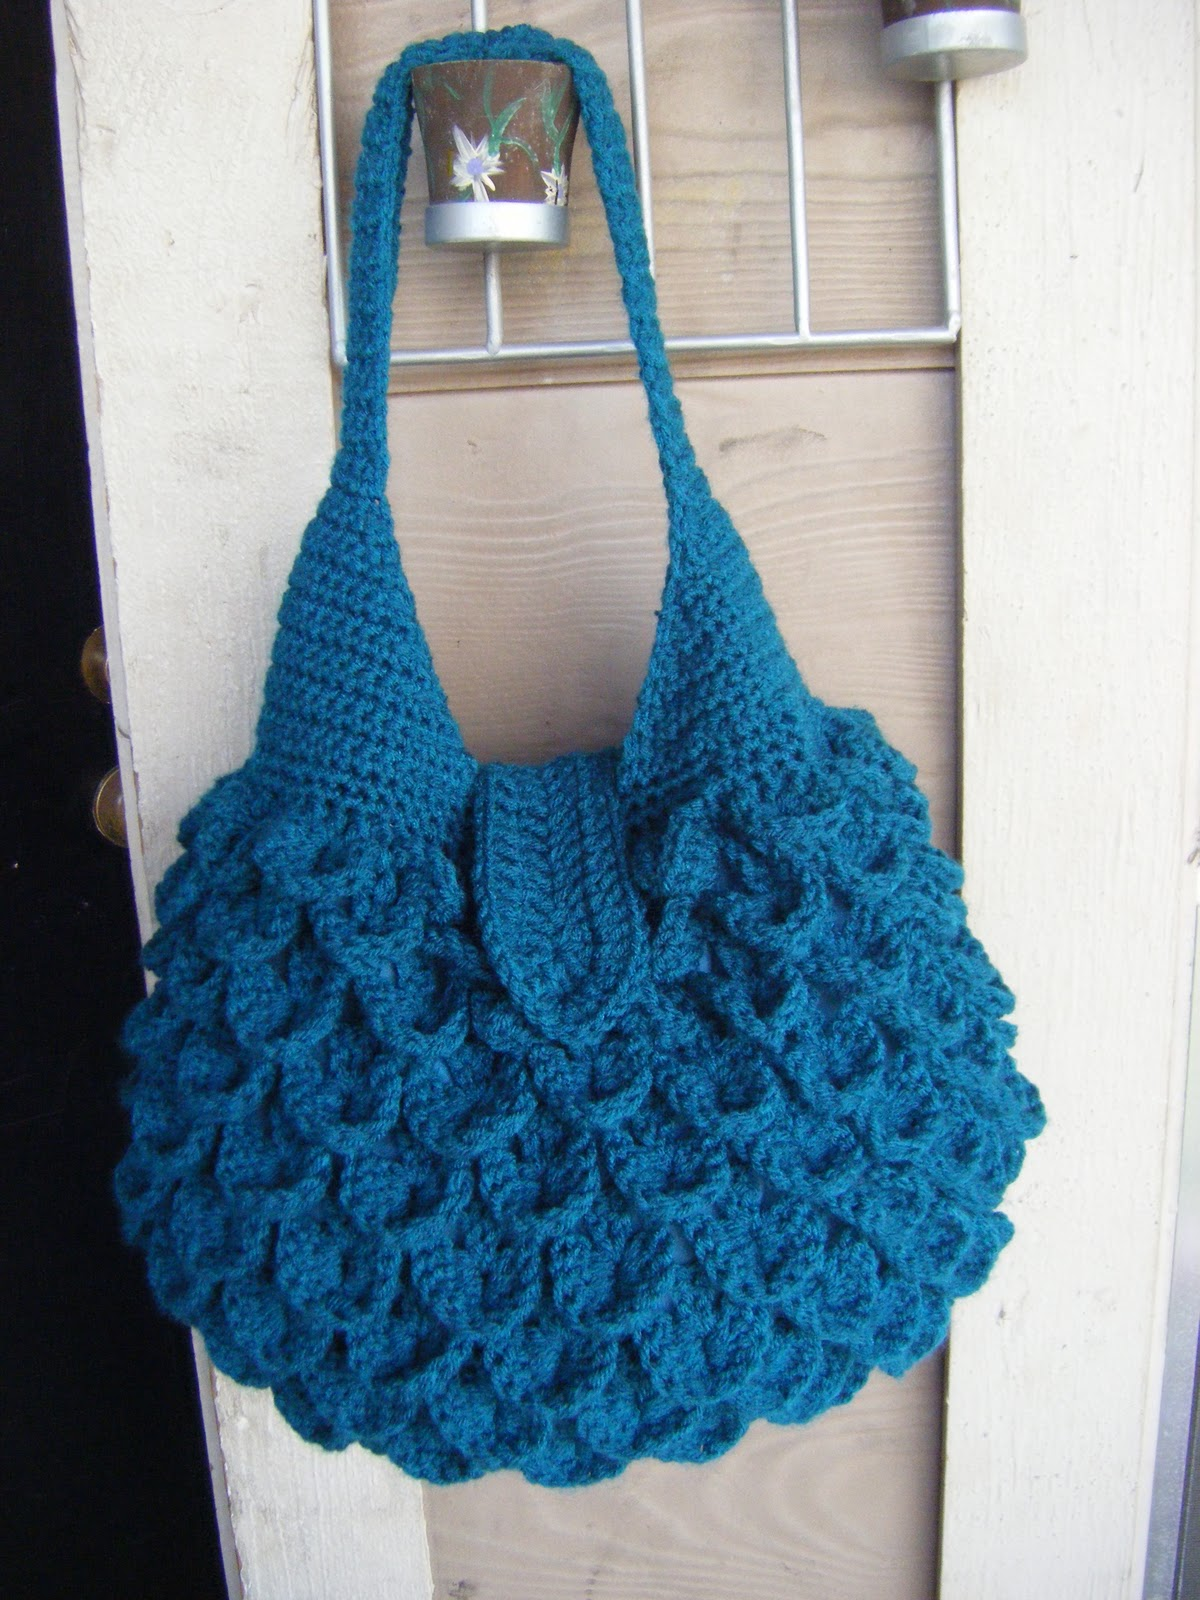 Crochet Pattern Central Bags : FREE CROCHET BAG HOLDER PATTERN - Crochet and Knitting ...